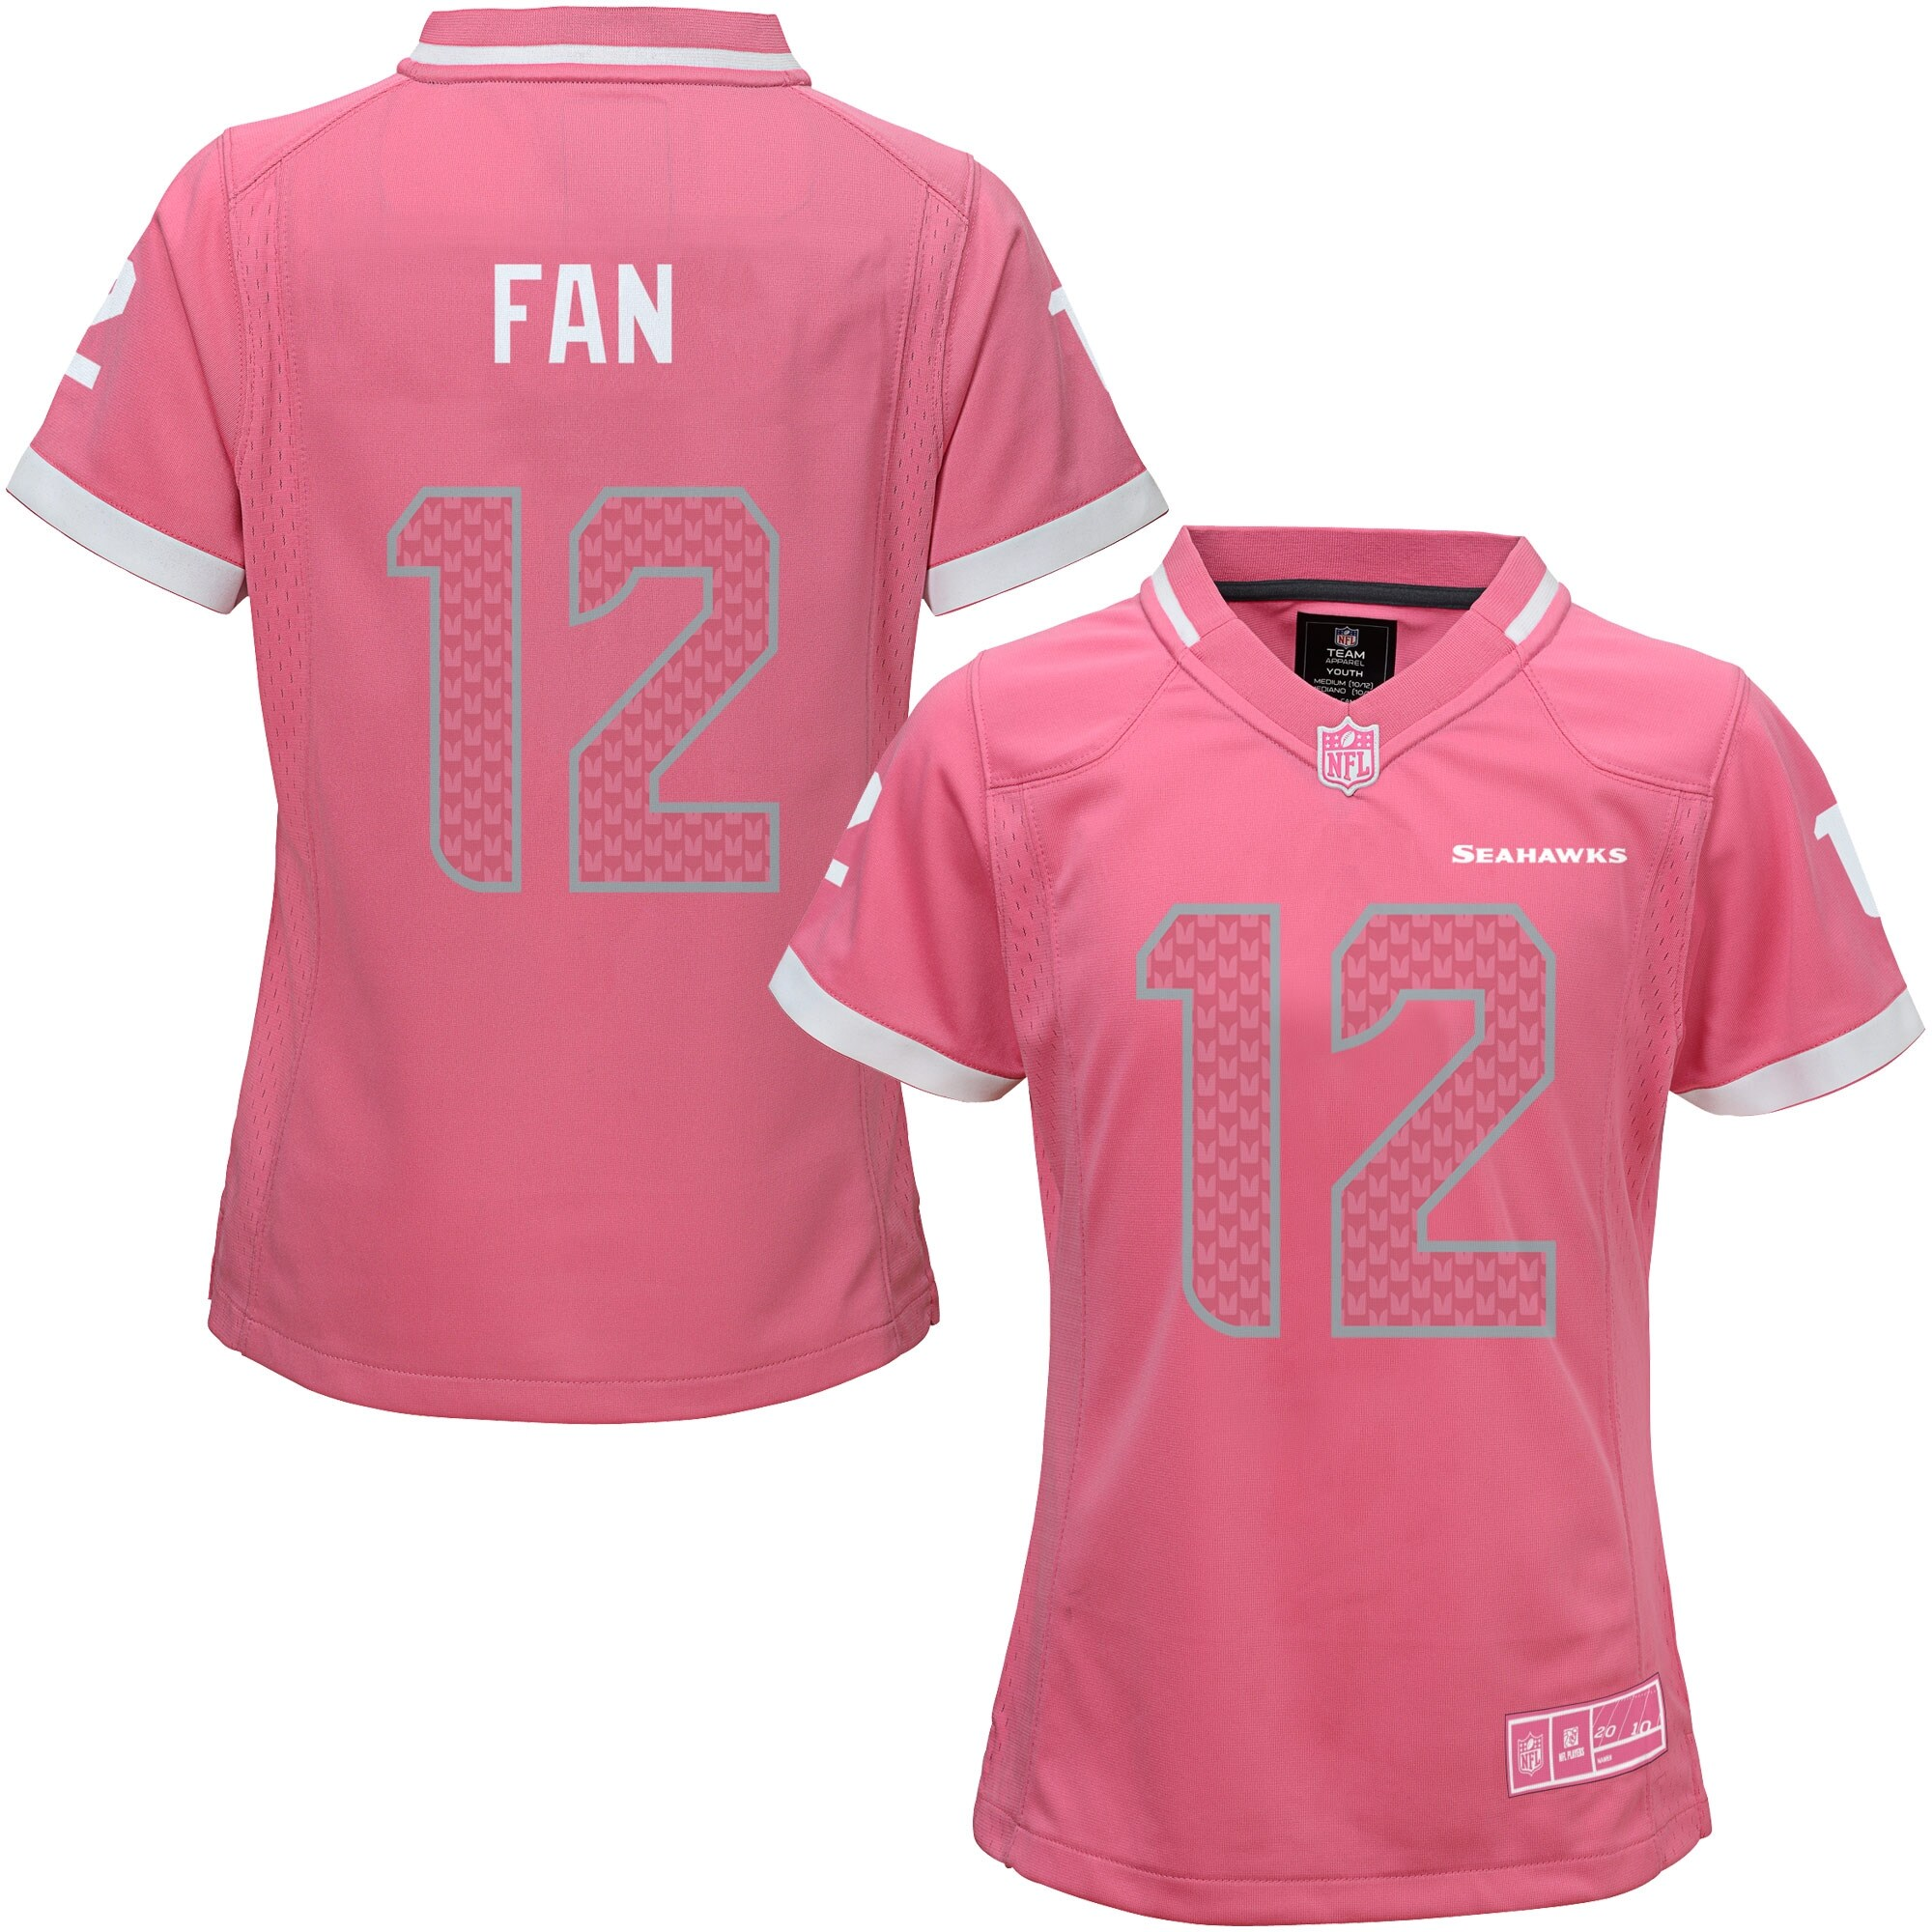 Seattle Seahawks Girls Youth Bubble Gum Jersey - Pink